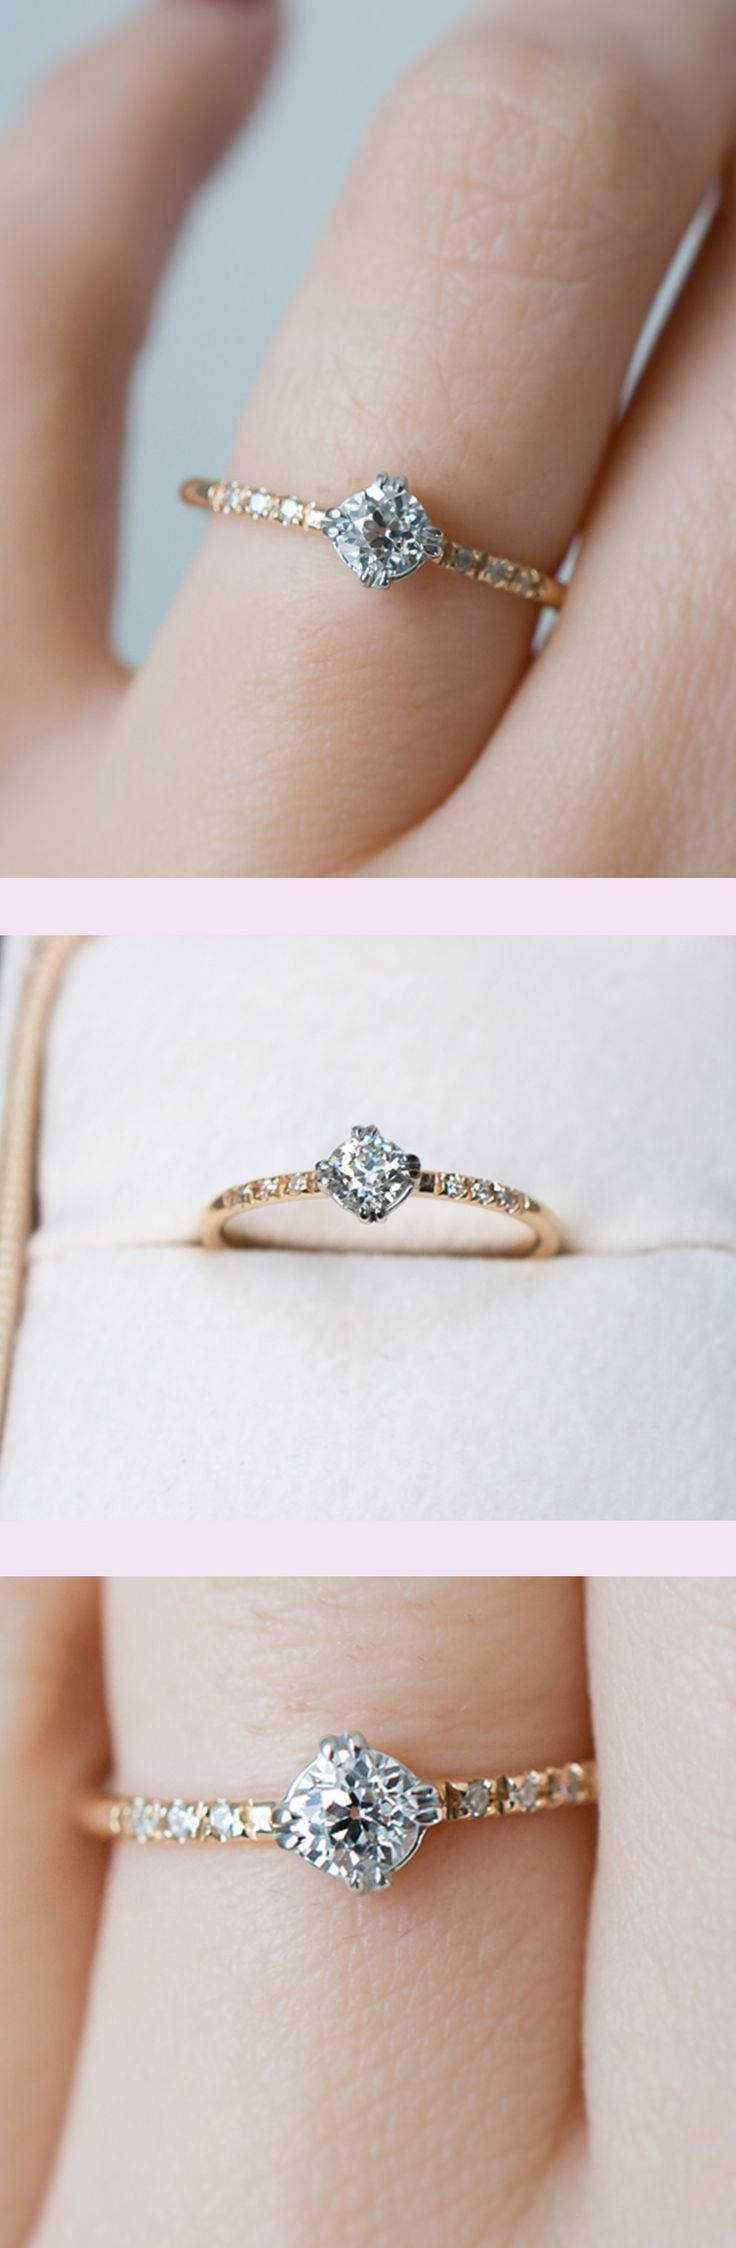 dainty engagement rings vintage style wedding rings The sweetest vintage diamond engagement ring by S Kind